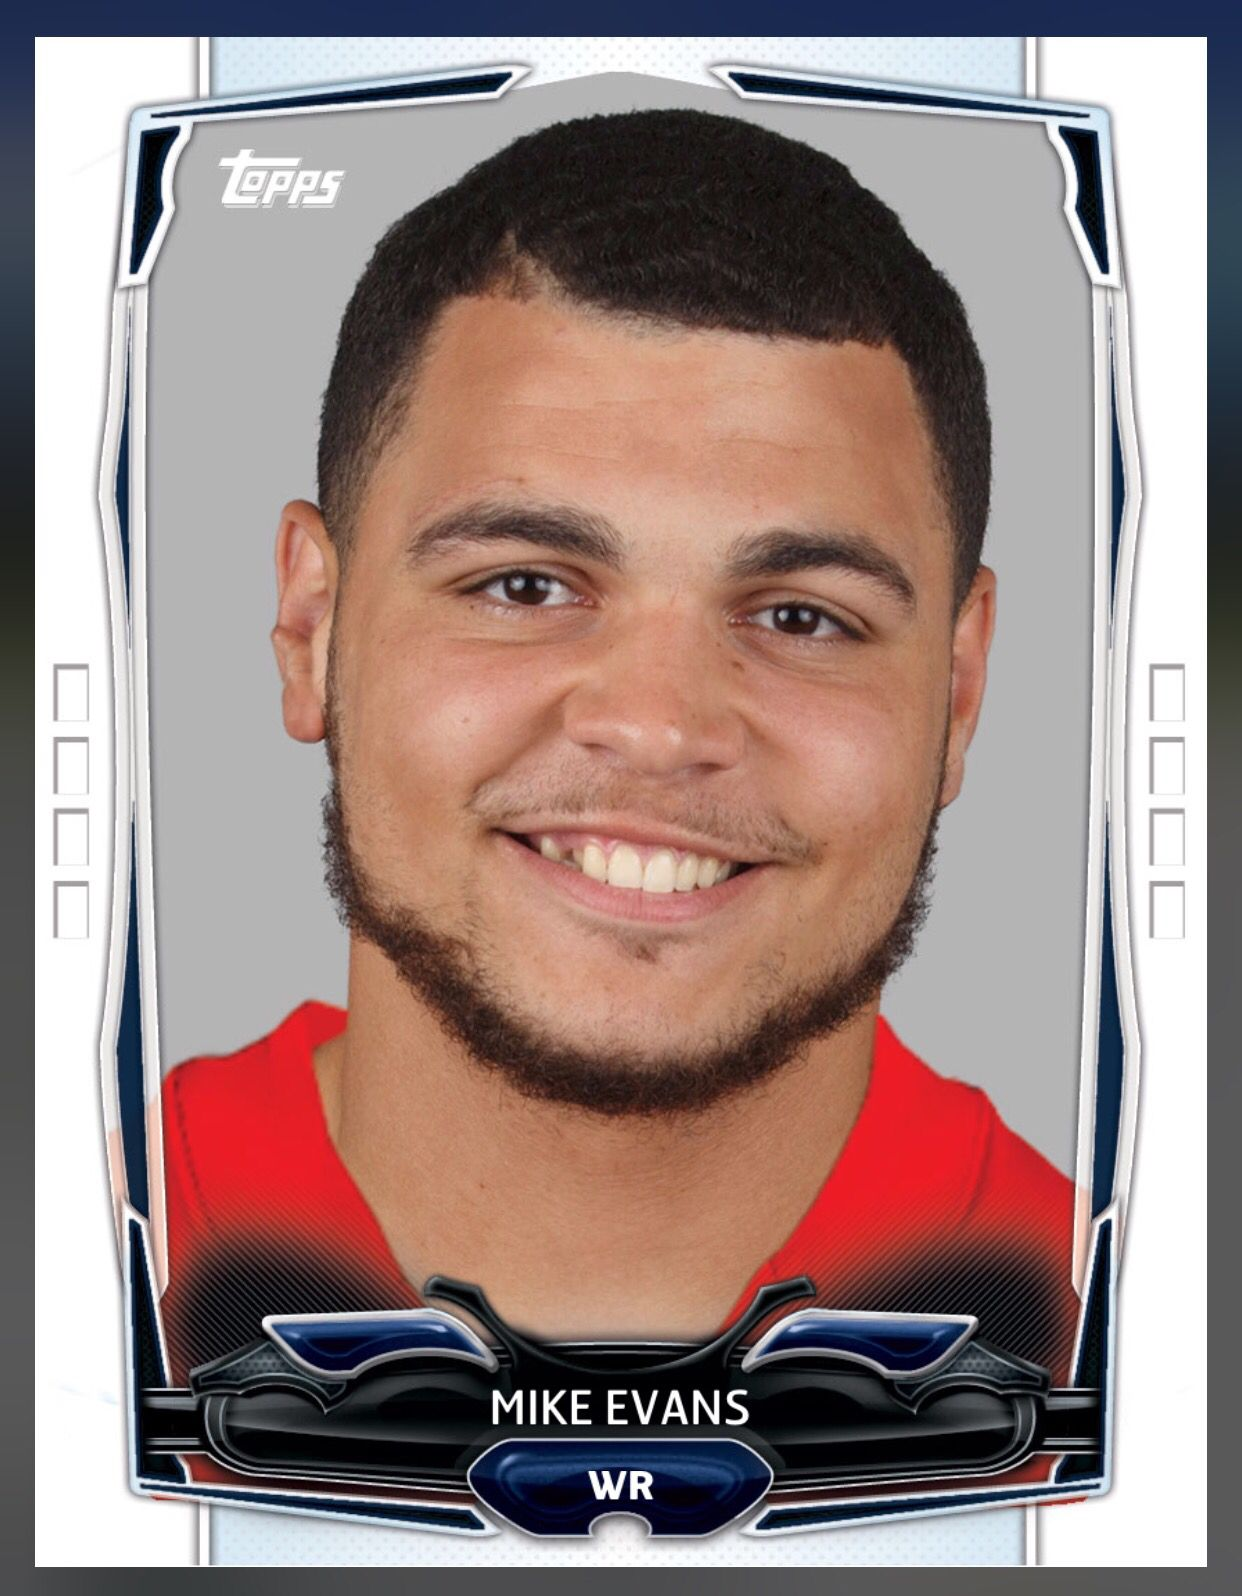 Mike Evans Tampa Bay Buccaneers Base Card 2015 Topps Huddle Football Trading Cards Tampa Bay Buccaneers Mike Evans